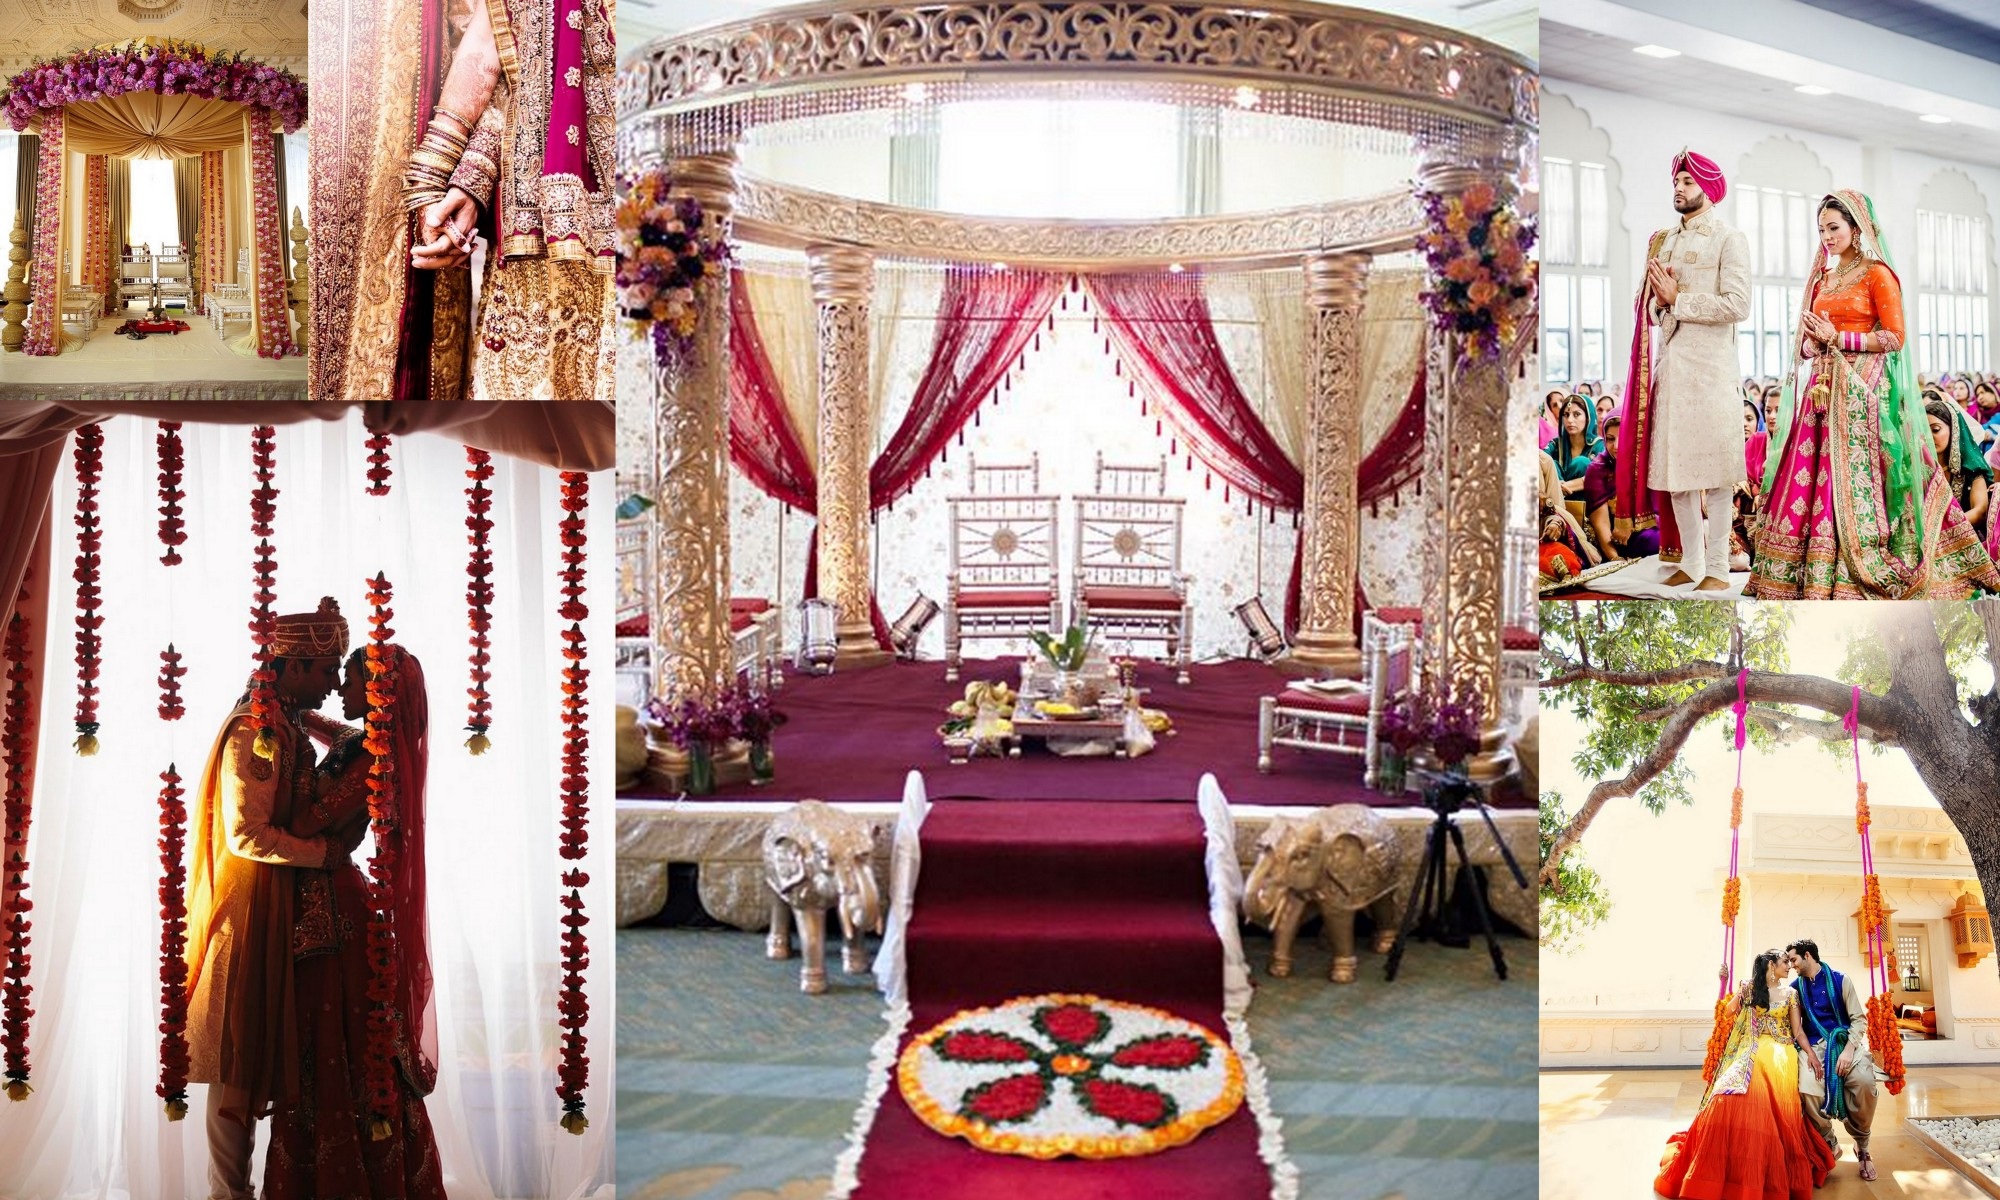 Indian Weddings Always Depict Royal And Tradition Bound Rituals In Their Wedding Celebration The Knot Is Not Only Tied To